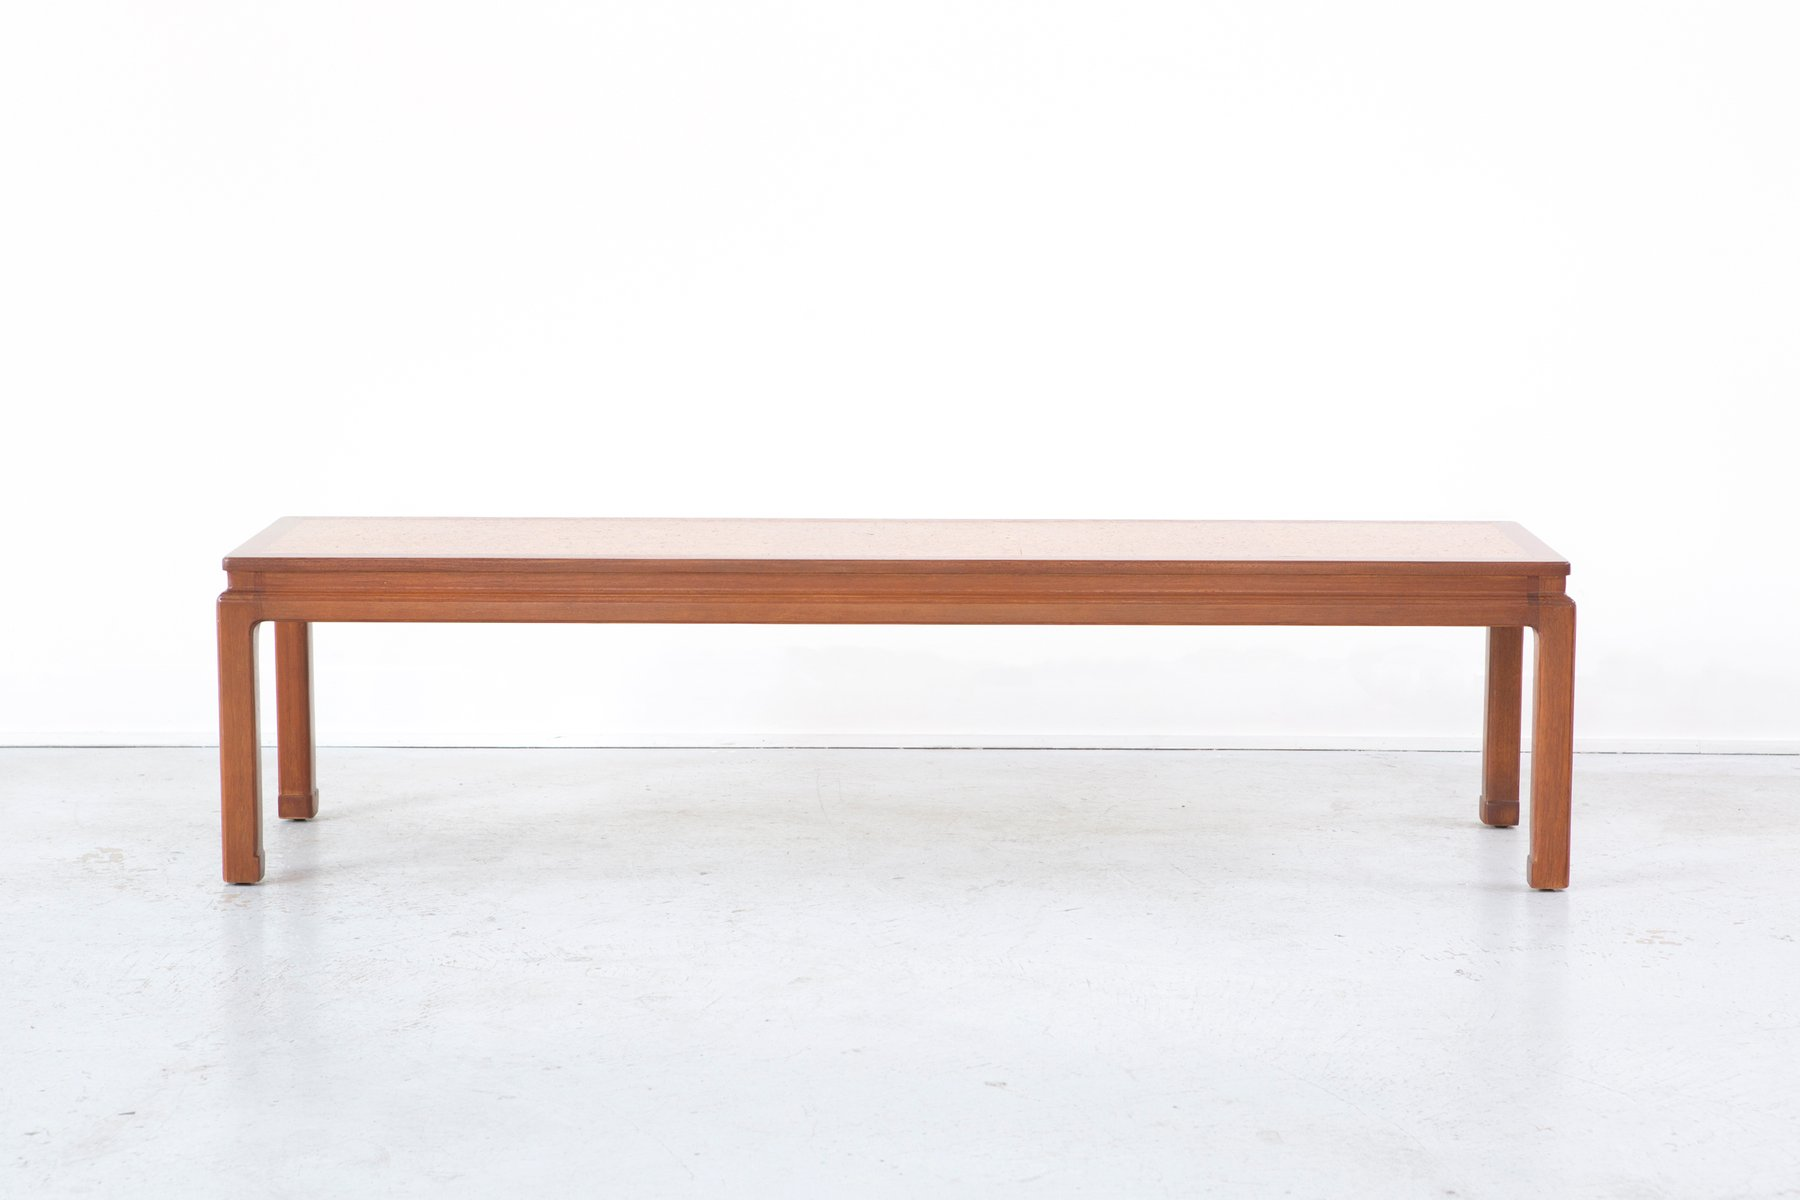 Mid Century Bench By Edward Wormley For Dunbar 1960s For Sale At Pamono